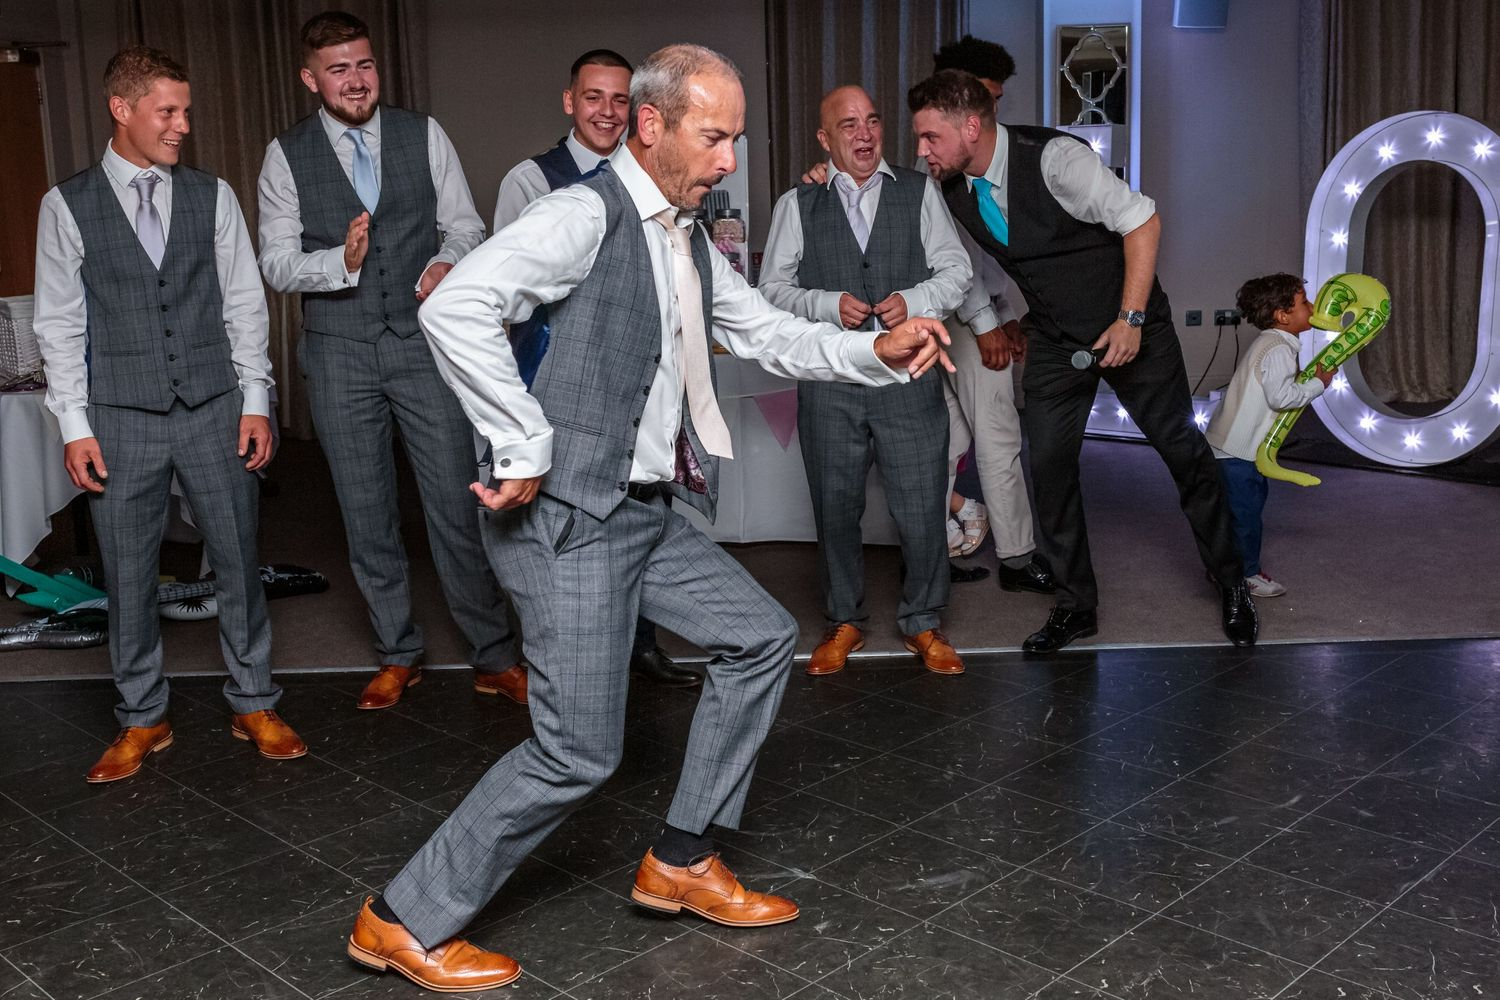 grooms father shows of his egyptian dance moves as the groomsmen watch on in the background